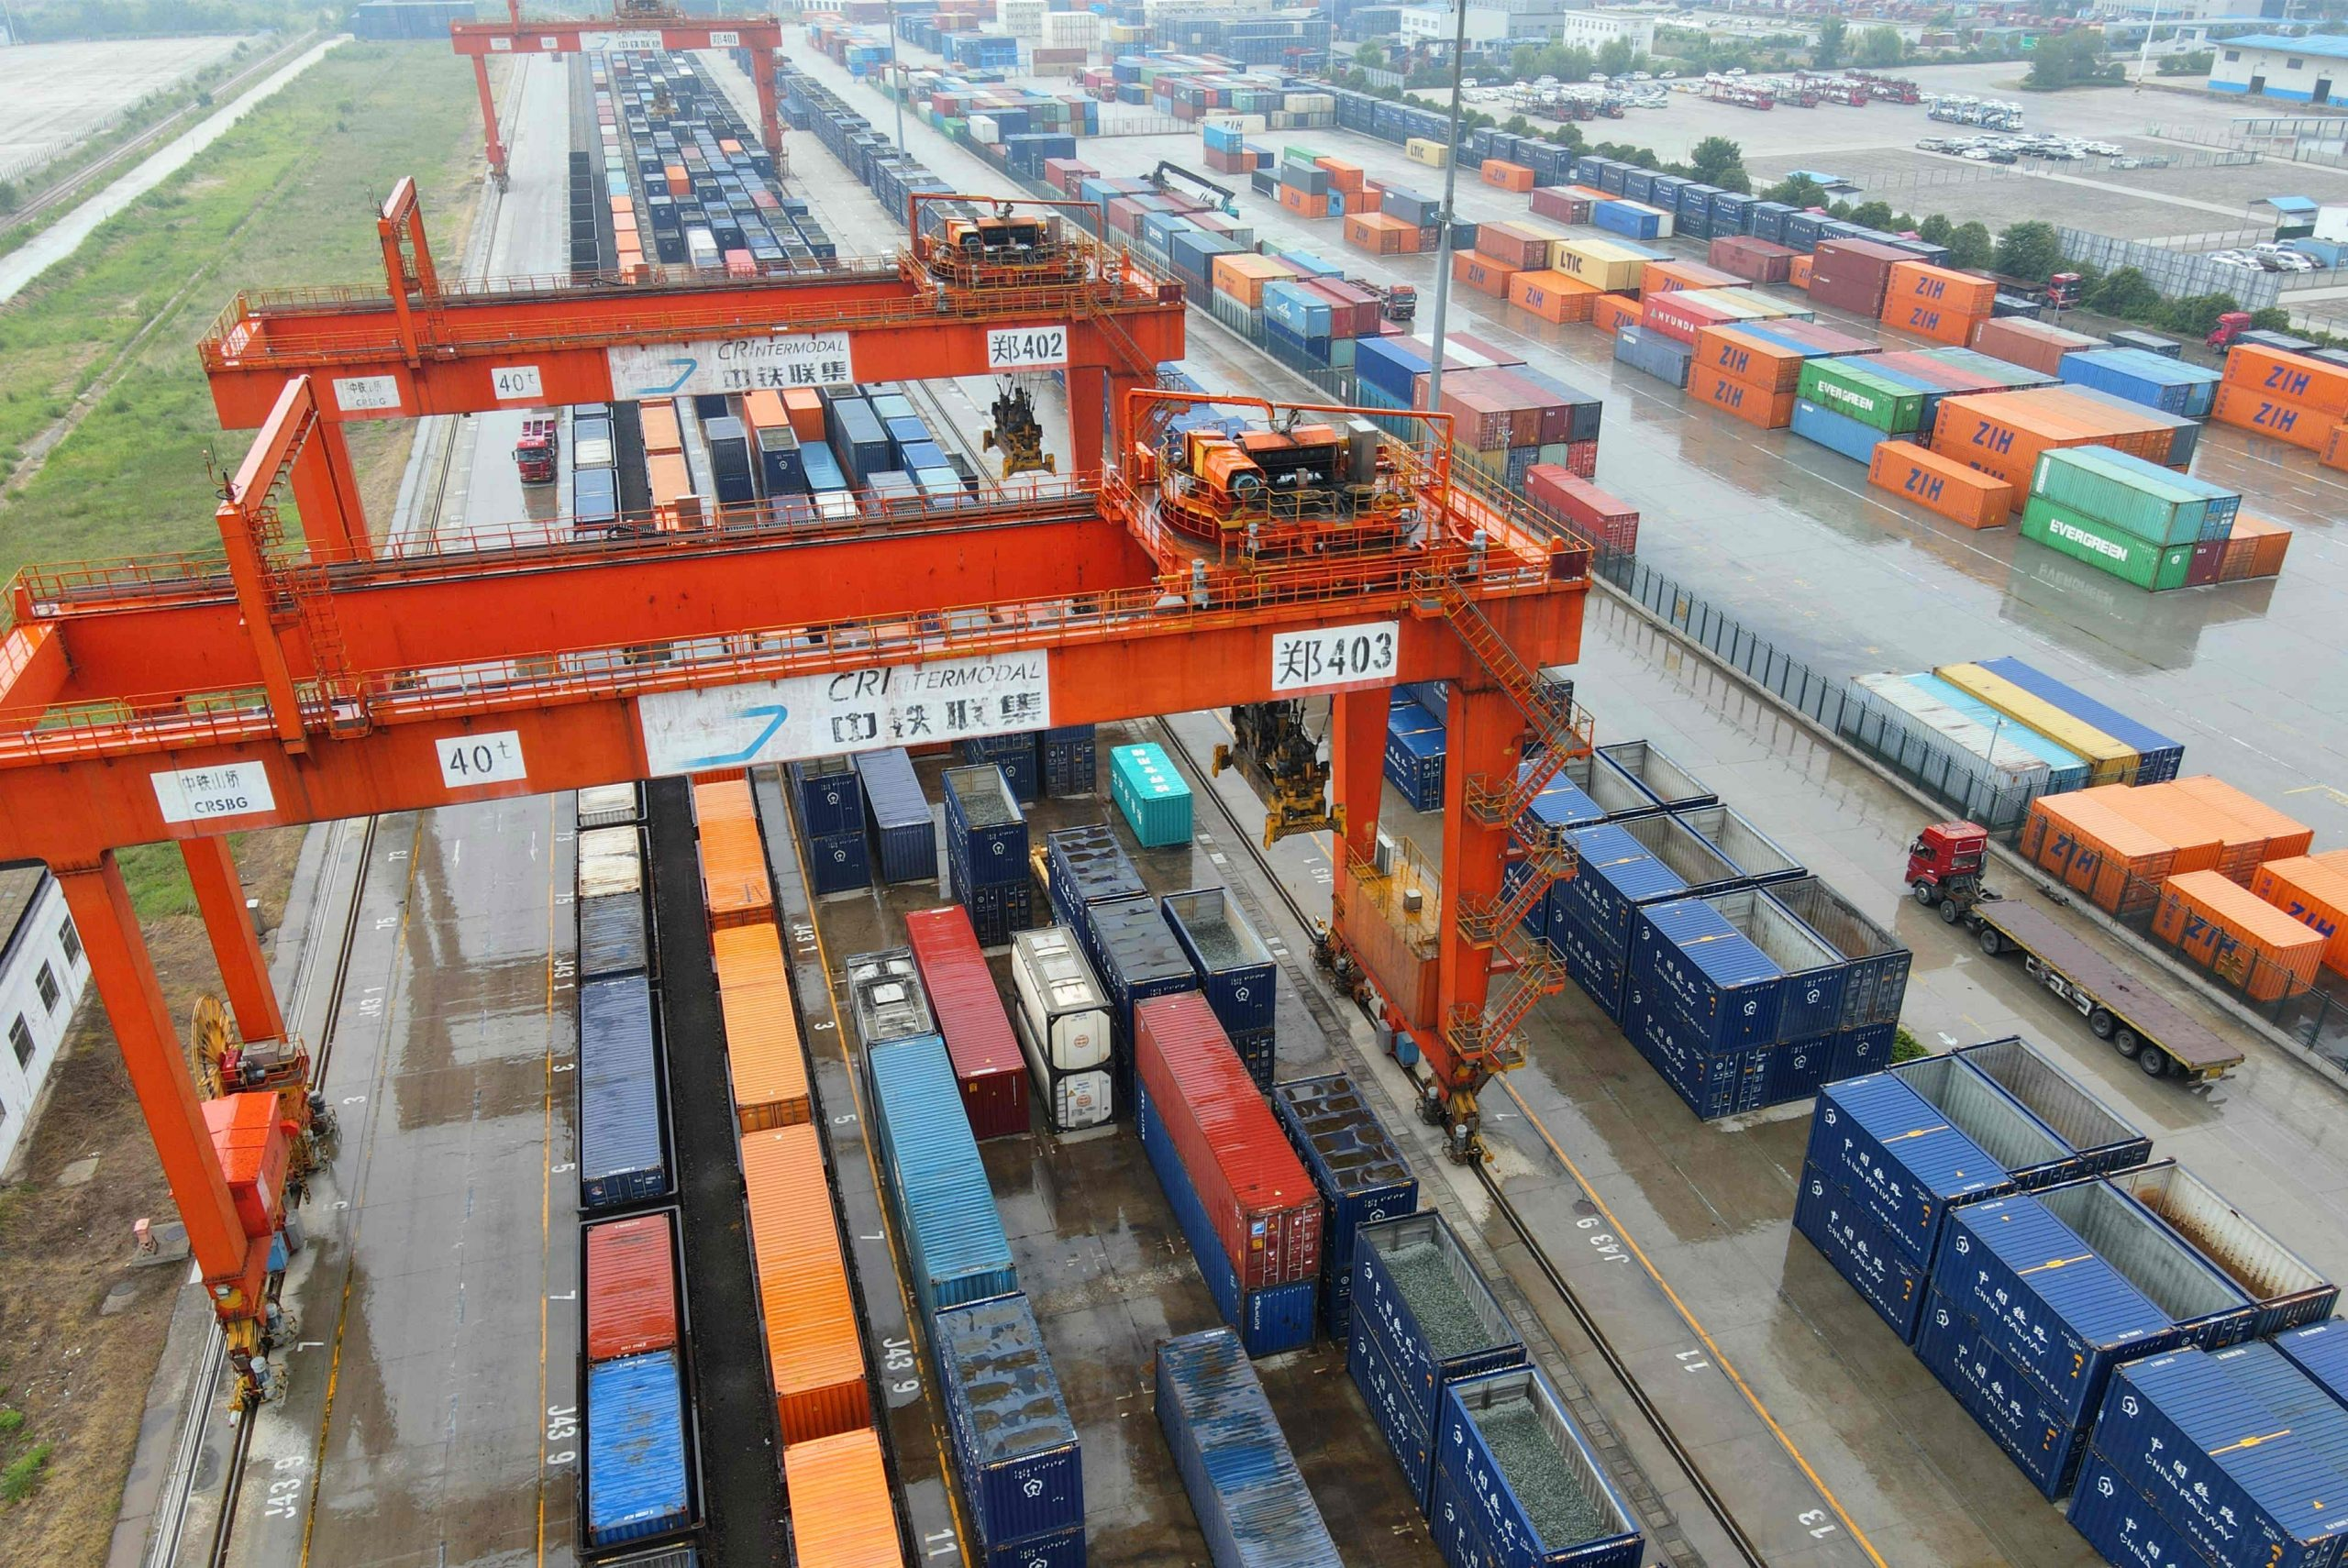 AIIB's investment in Zhengzhou International Land Port was approved for USD 150 million